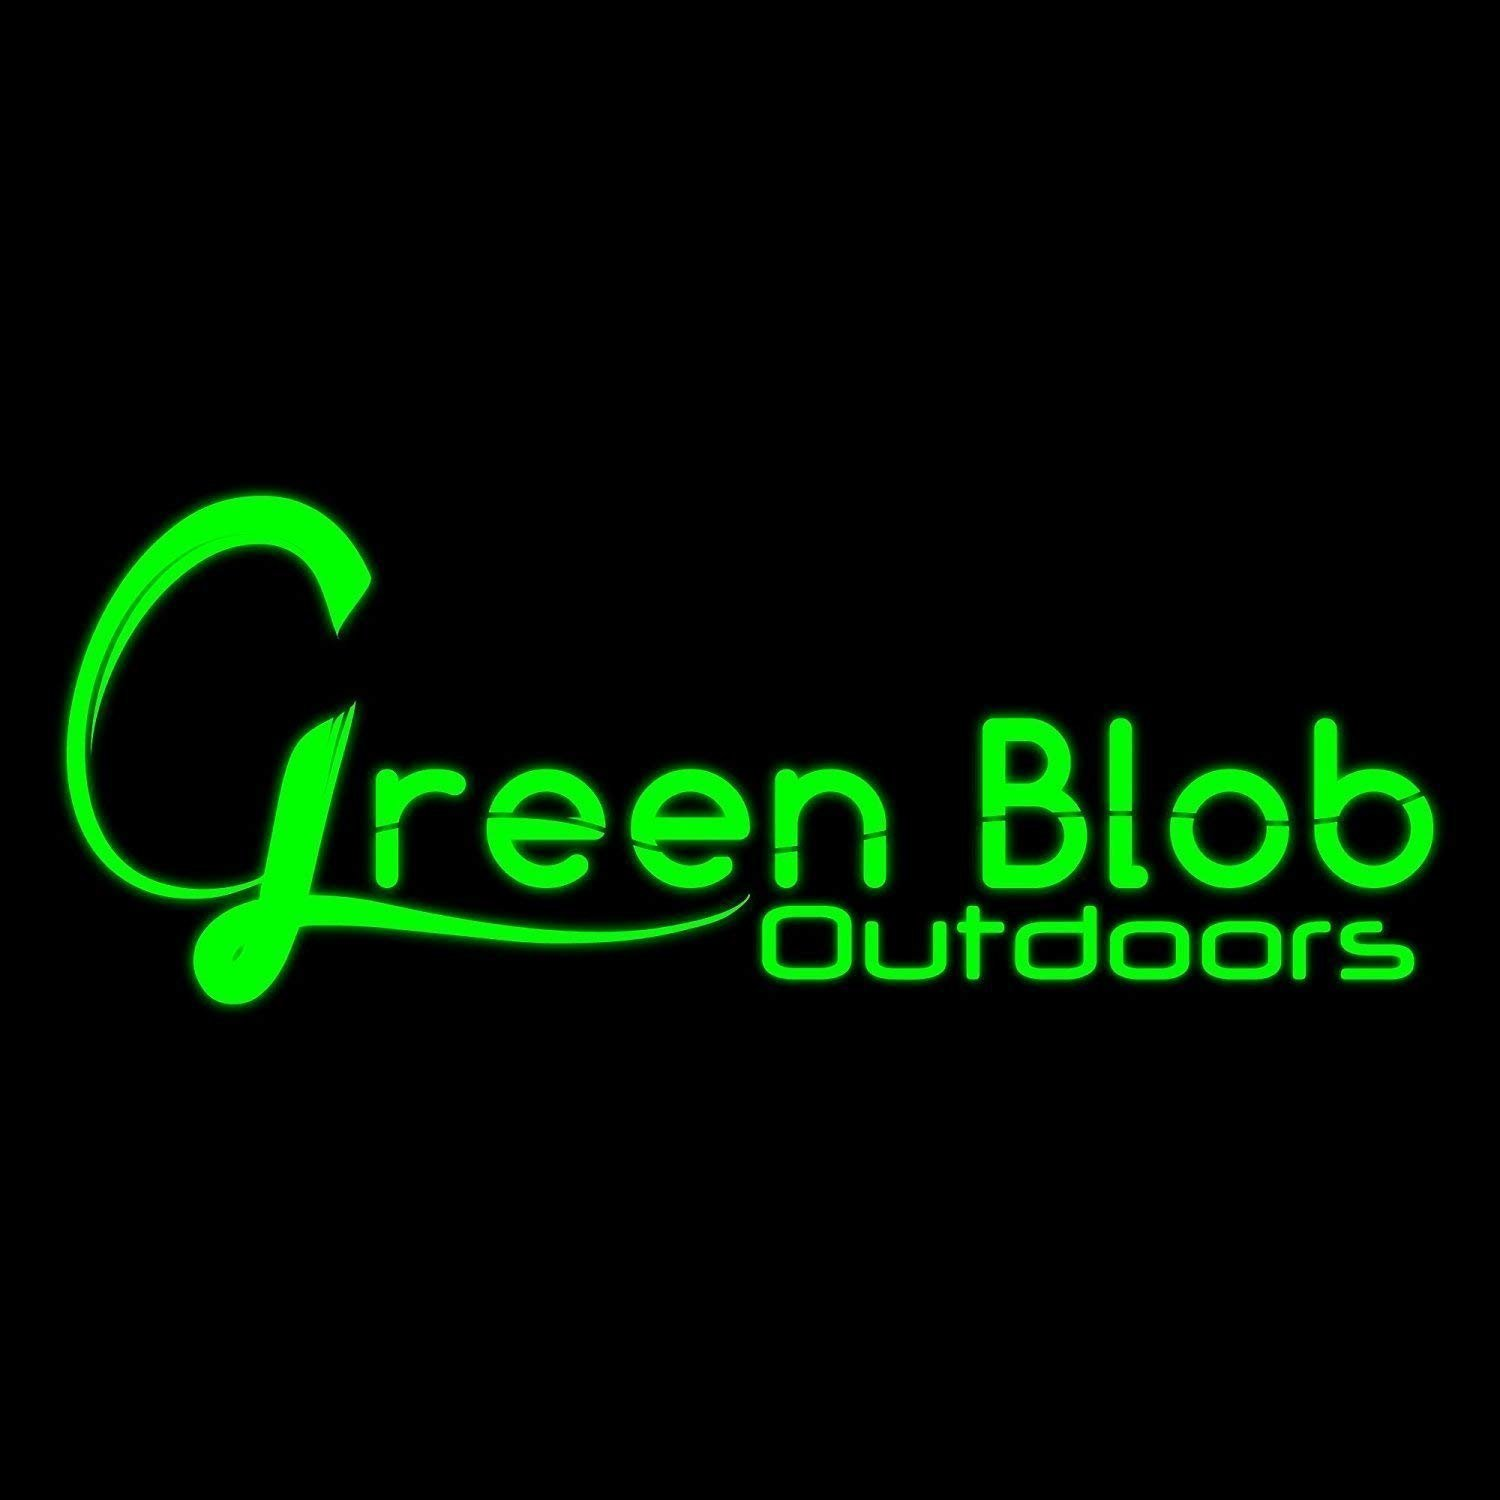 Green Blob Outdoors White Dock 15000 Lumen Underwater 110 Volt AC with 3 Prong Plug, Fishing Light LED Fish Finding System Light with 30ft Power Cord, Bait rig, Fish attractant, Ponds, Squid (White)